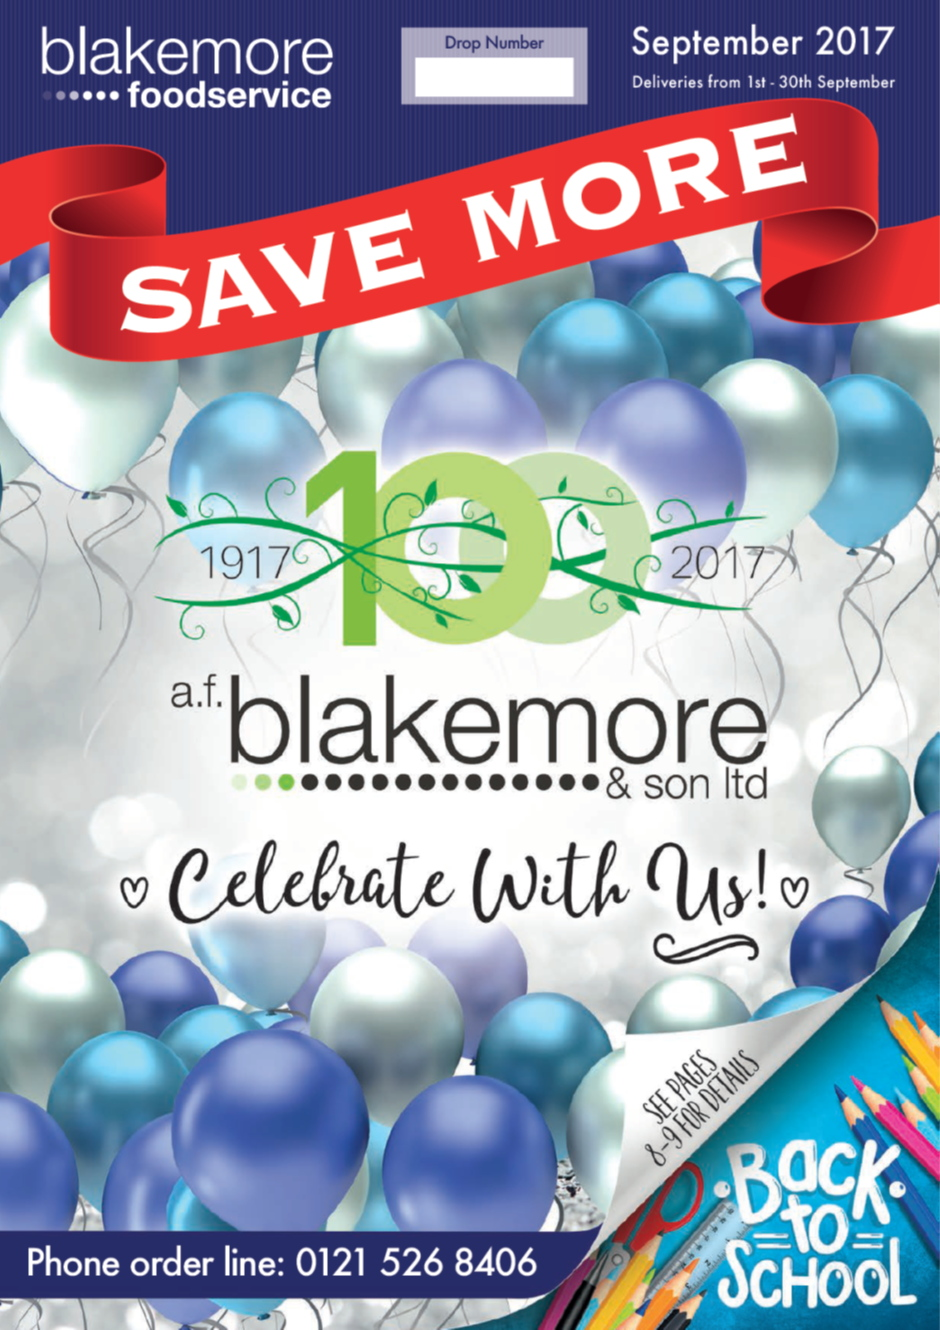 Blakemore_Foodservice_promotions_September_2017